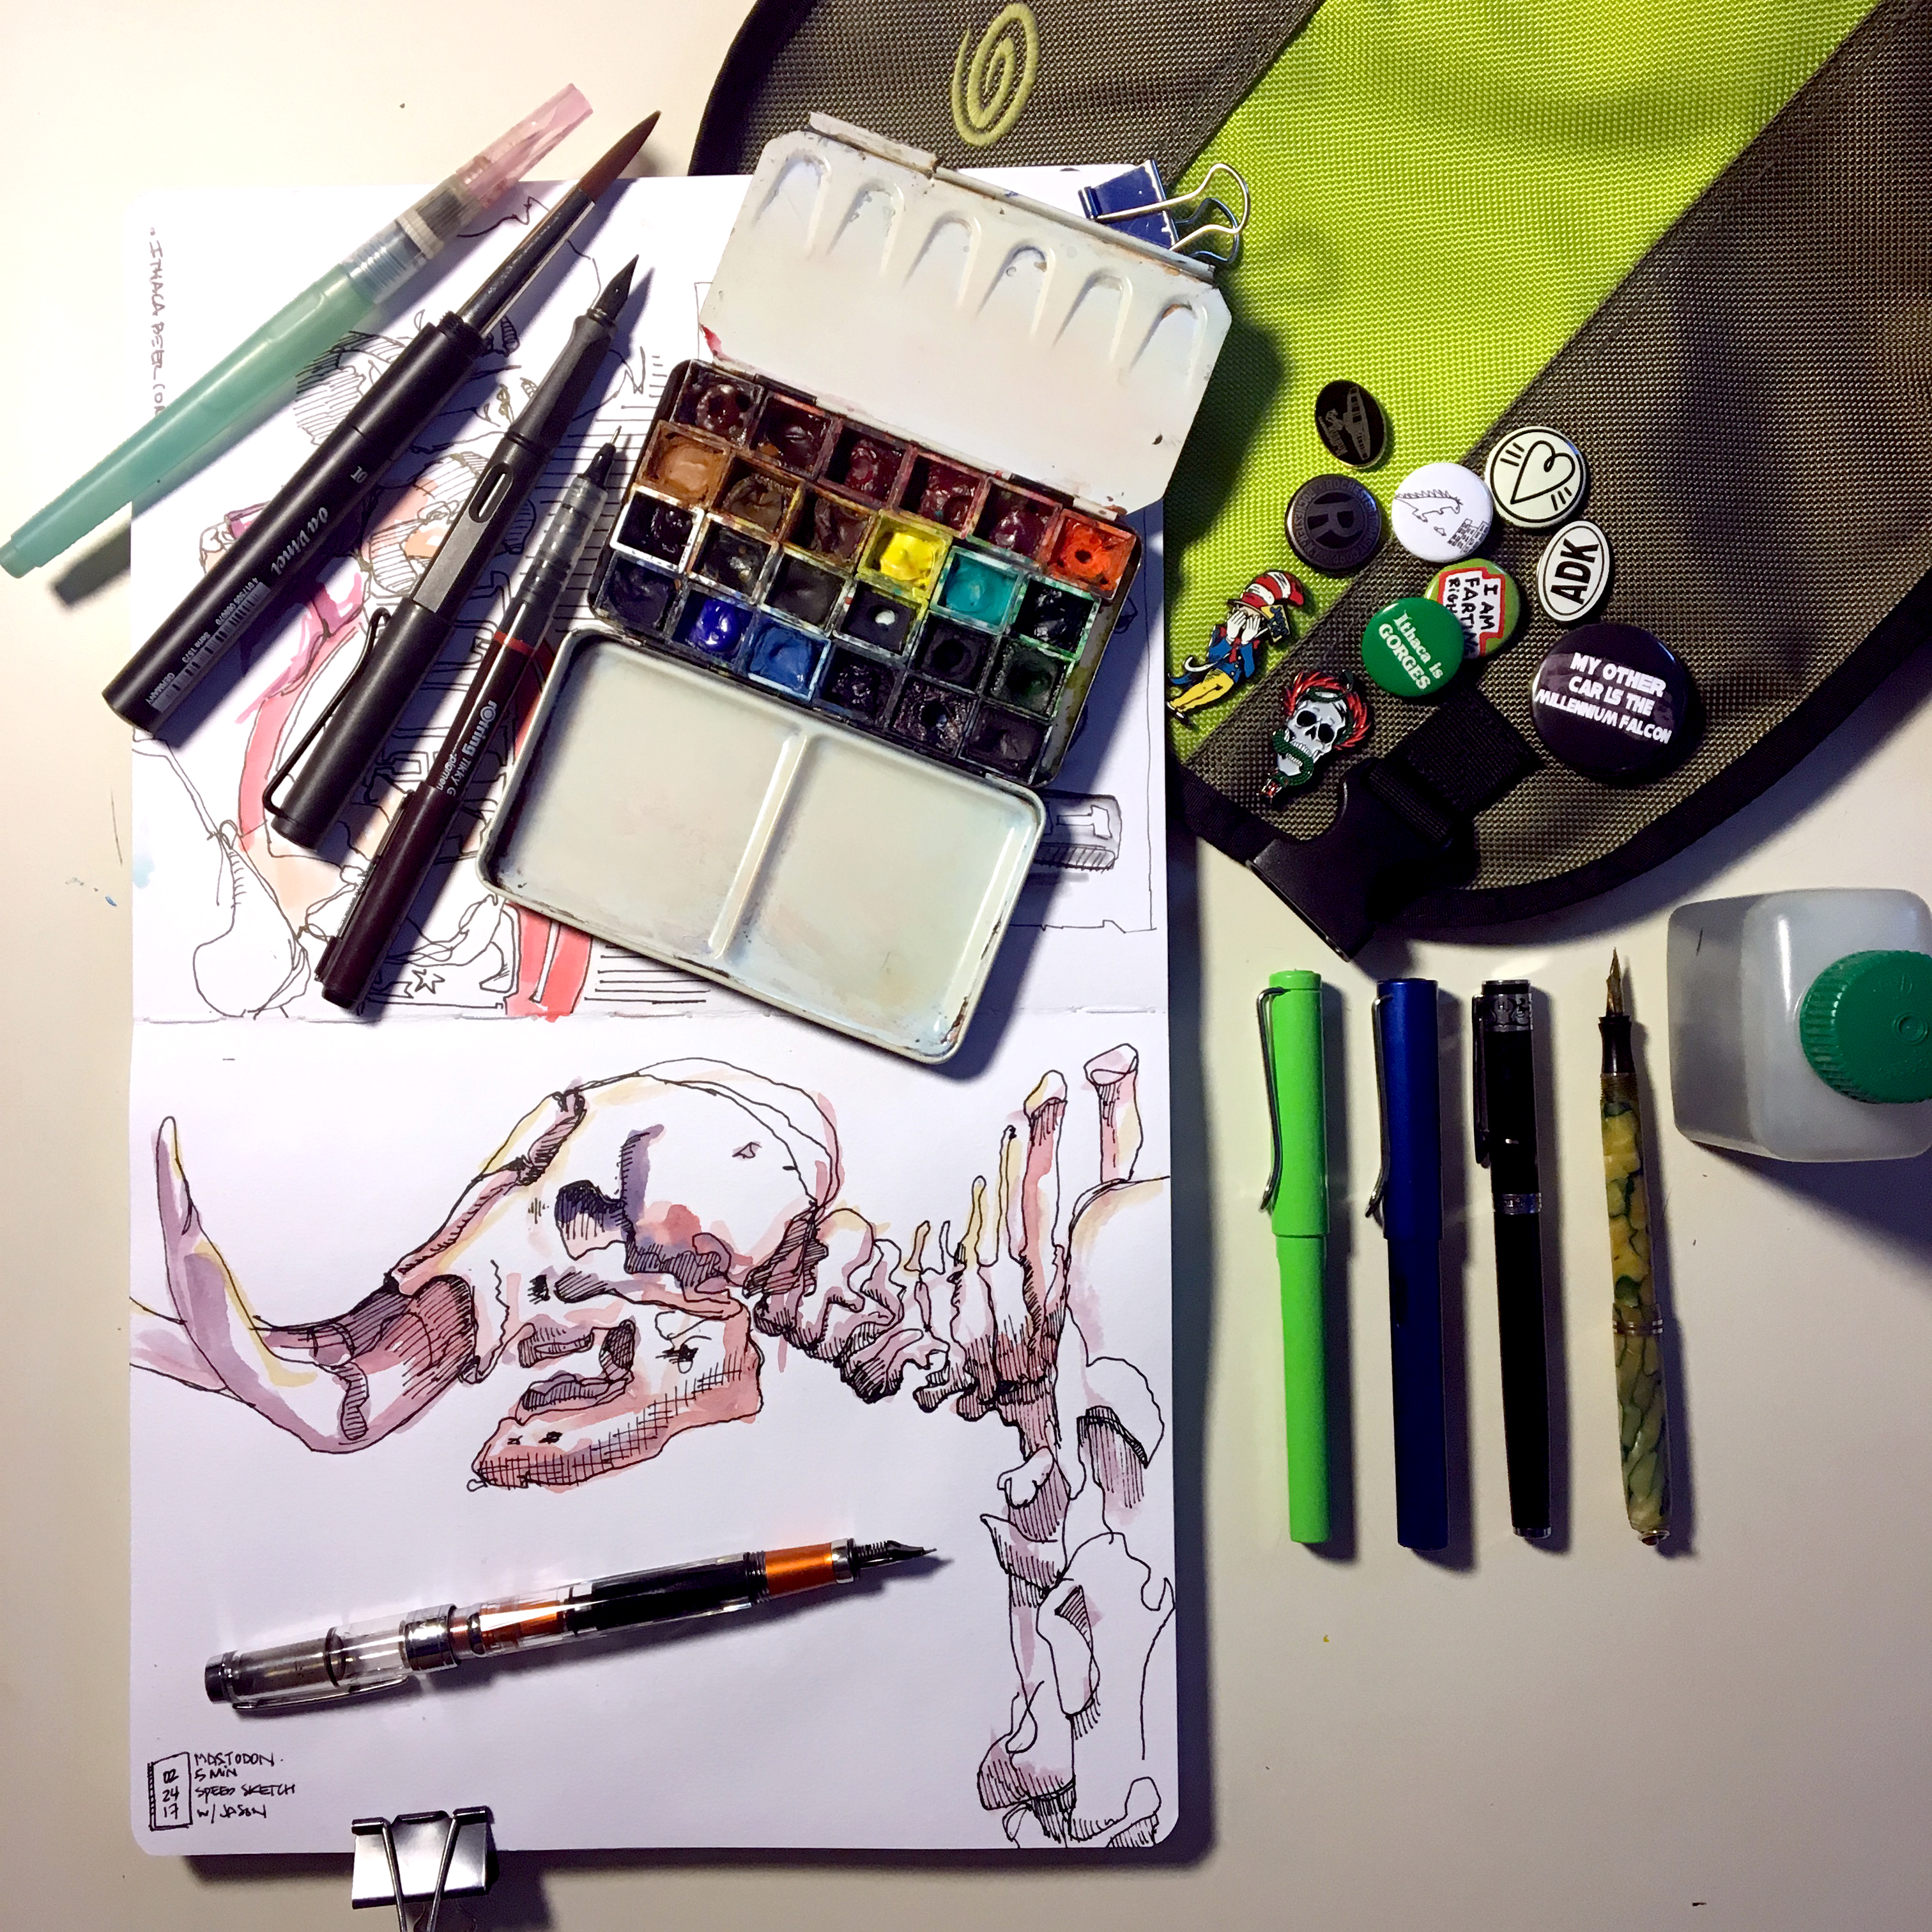 A detail of my ever-expanding drawing kit.